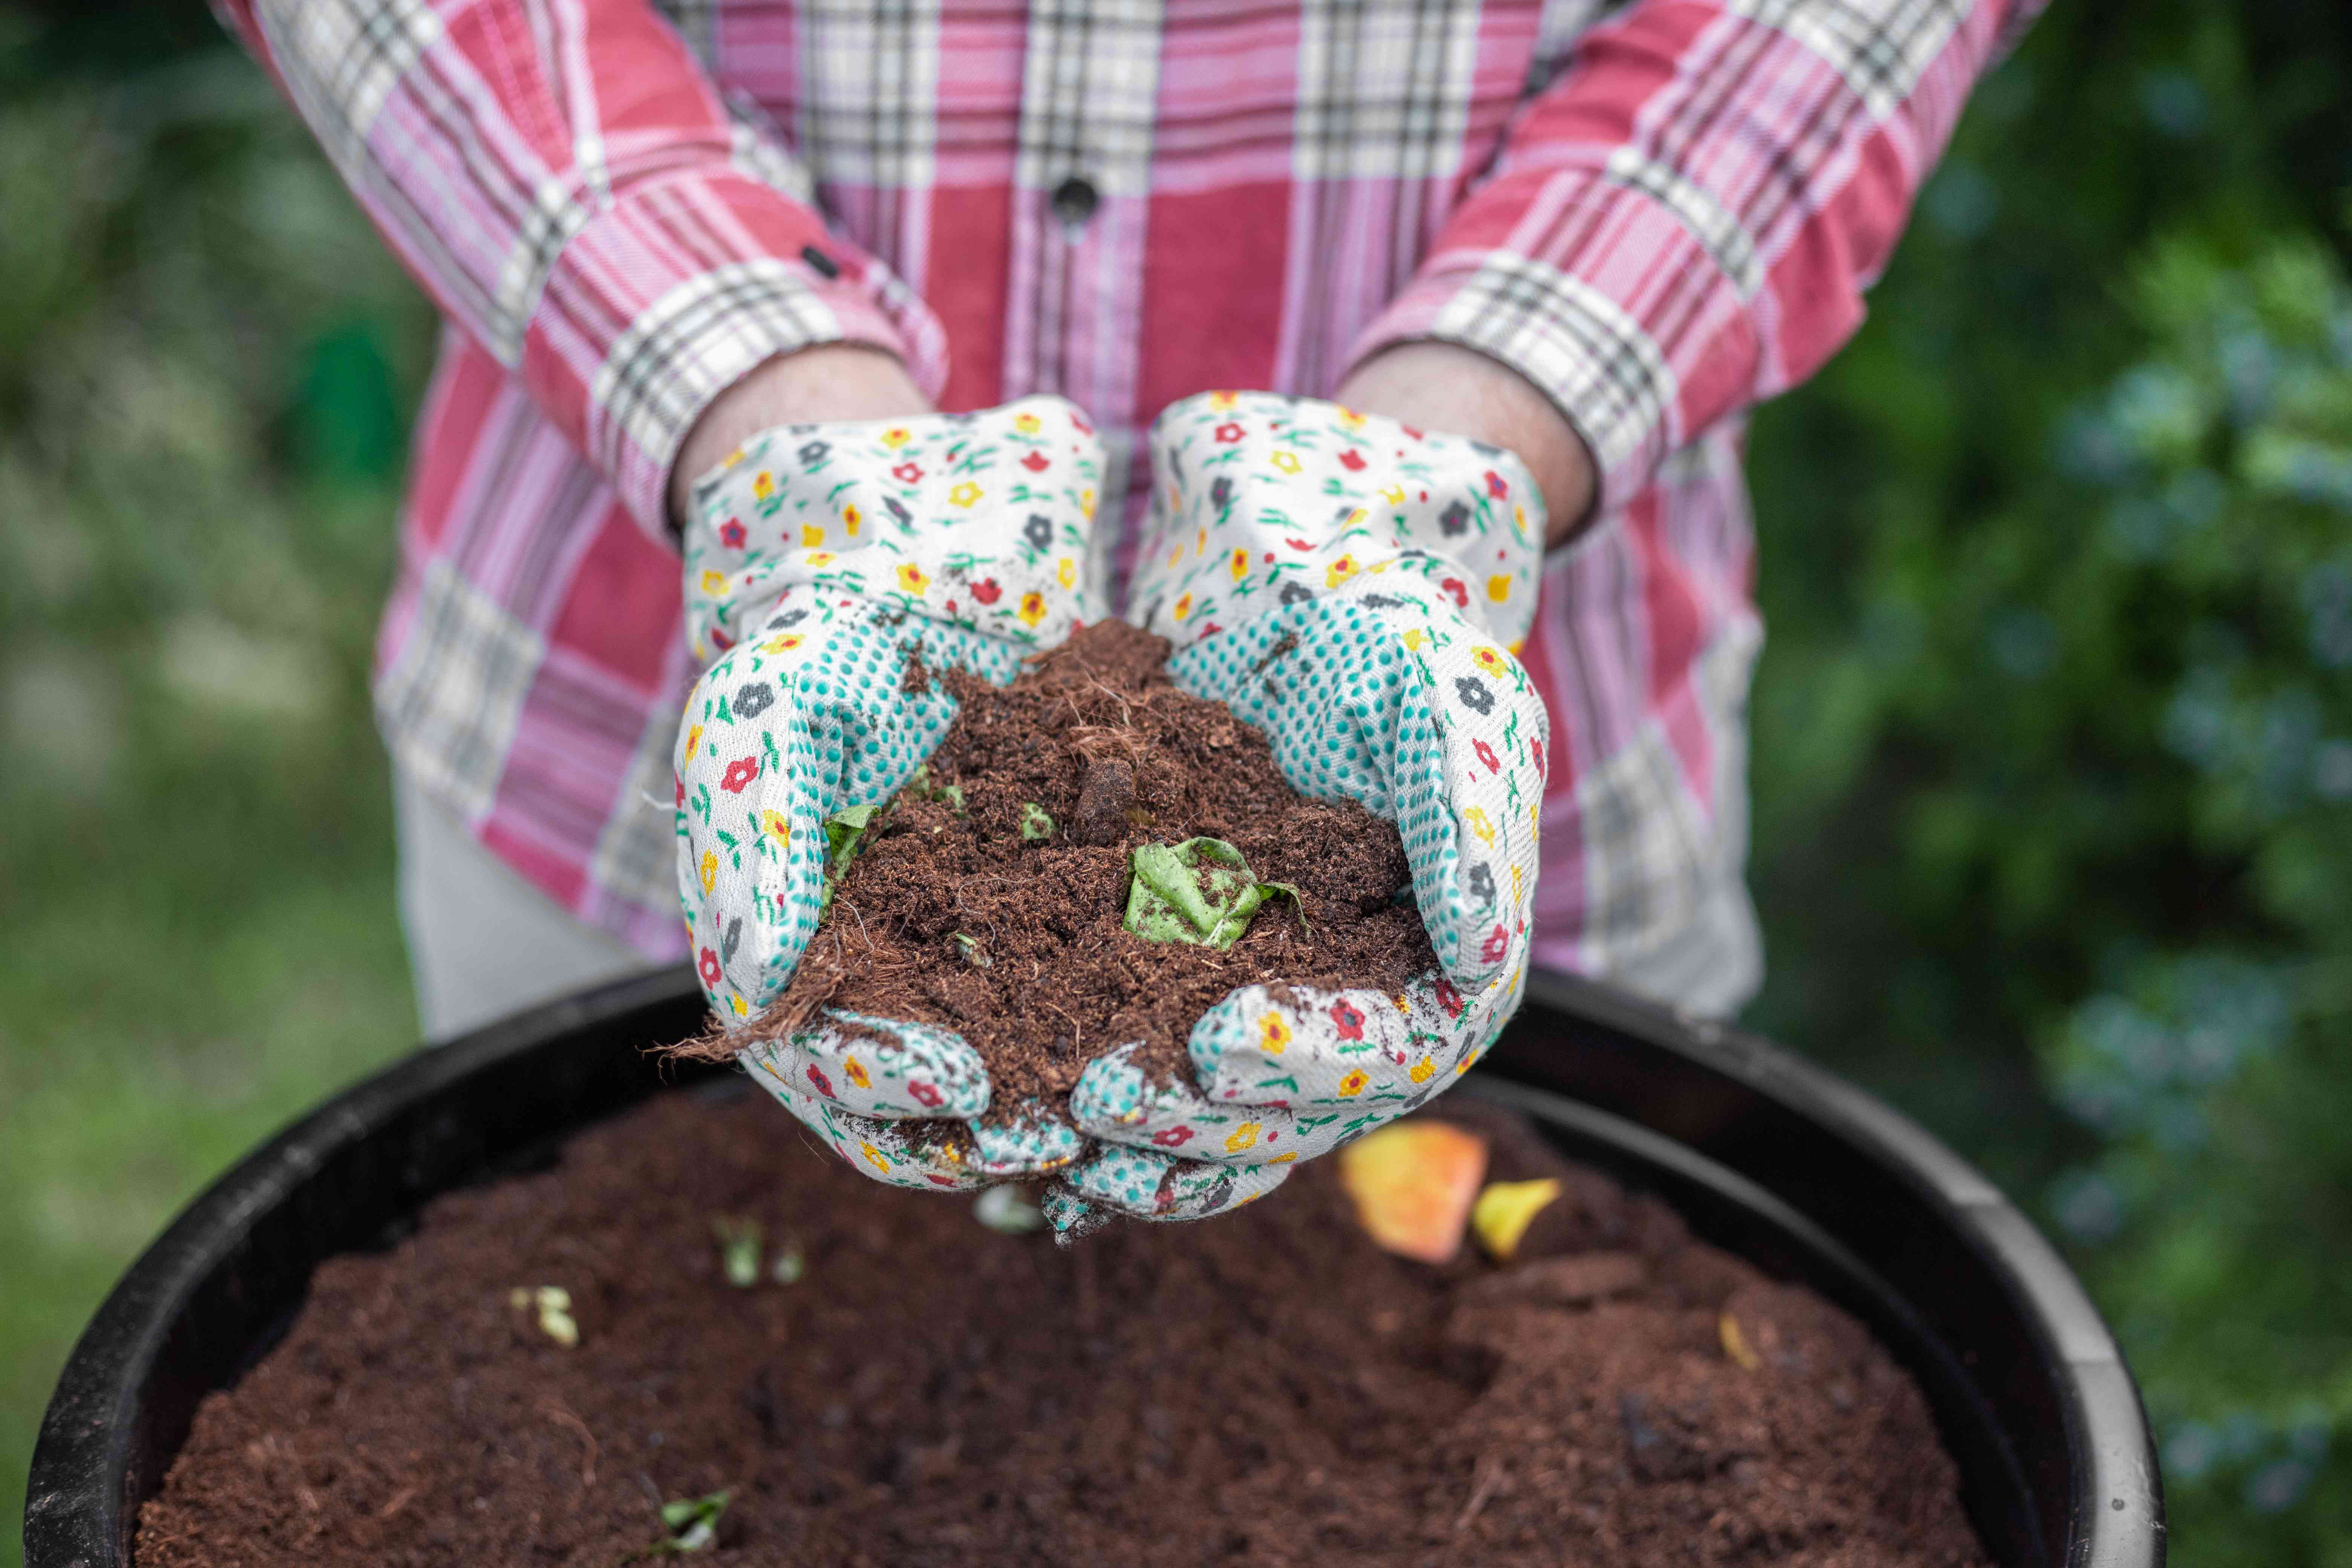 person in plaid shirt with gardening gloves shows off fresh compost in black bucket